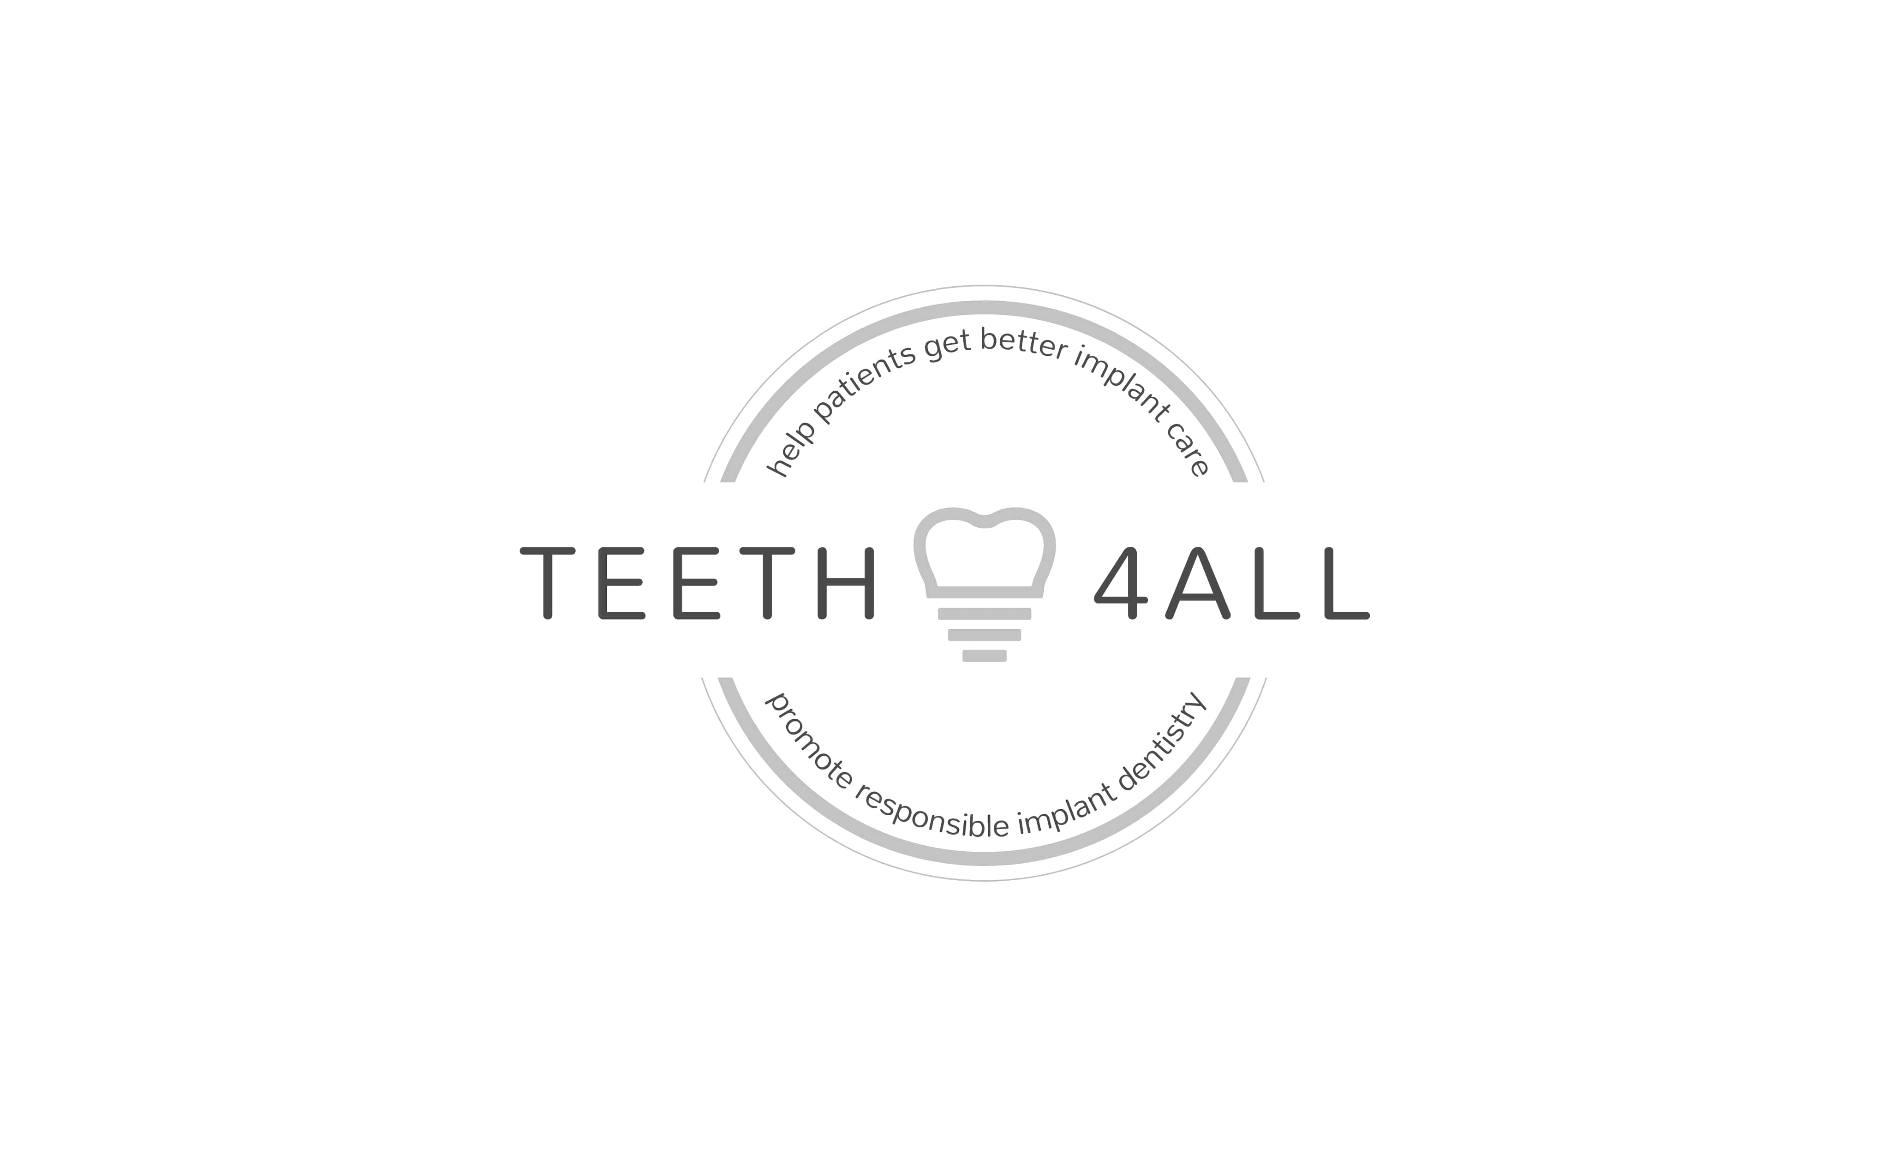 Teeth 4All help patients get better implant care promote responsible implant dentistry